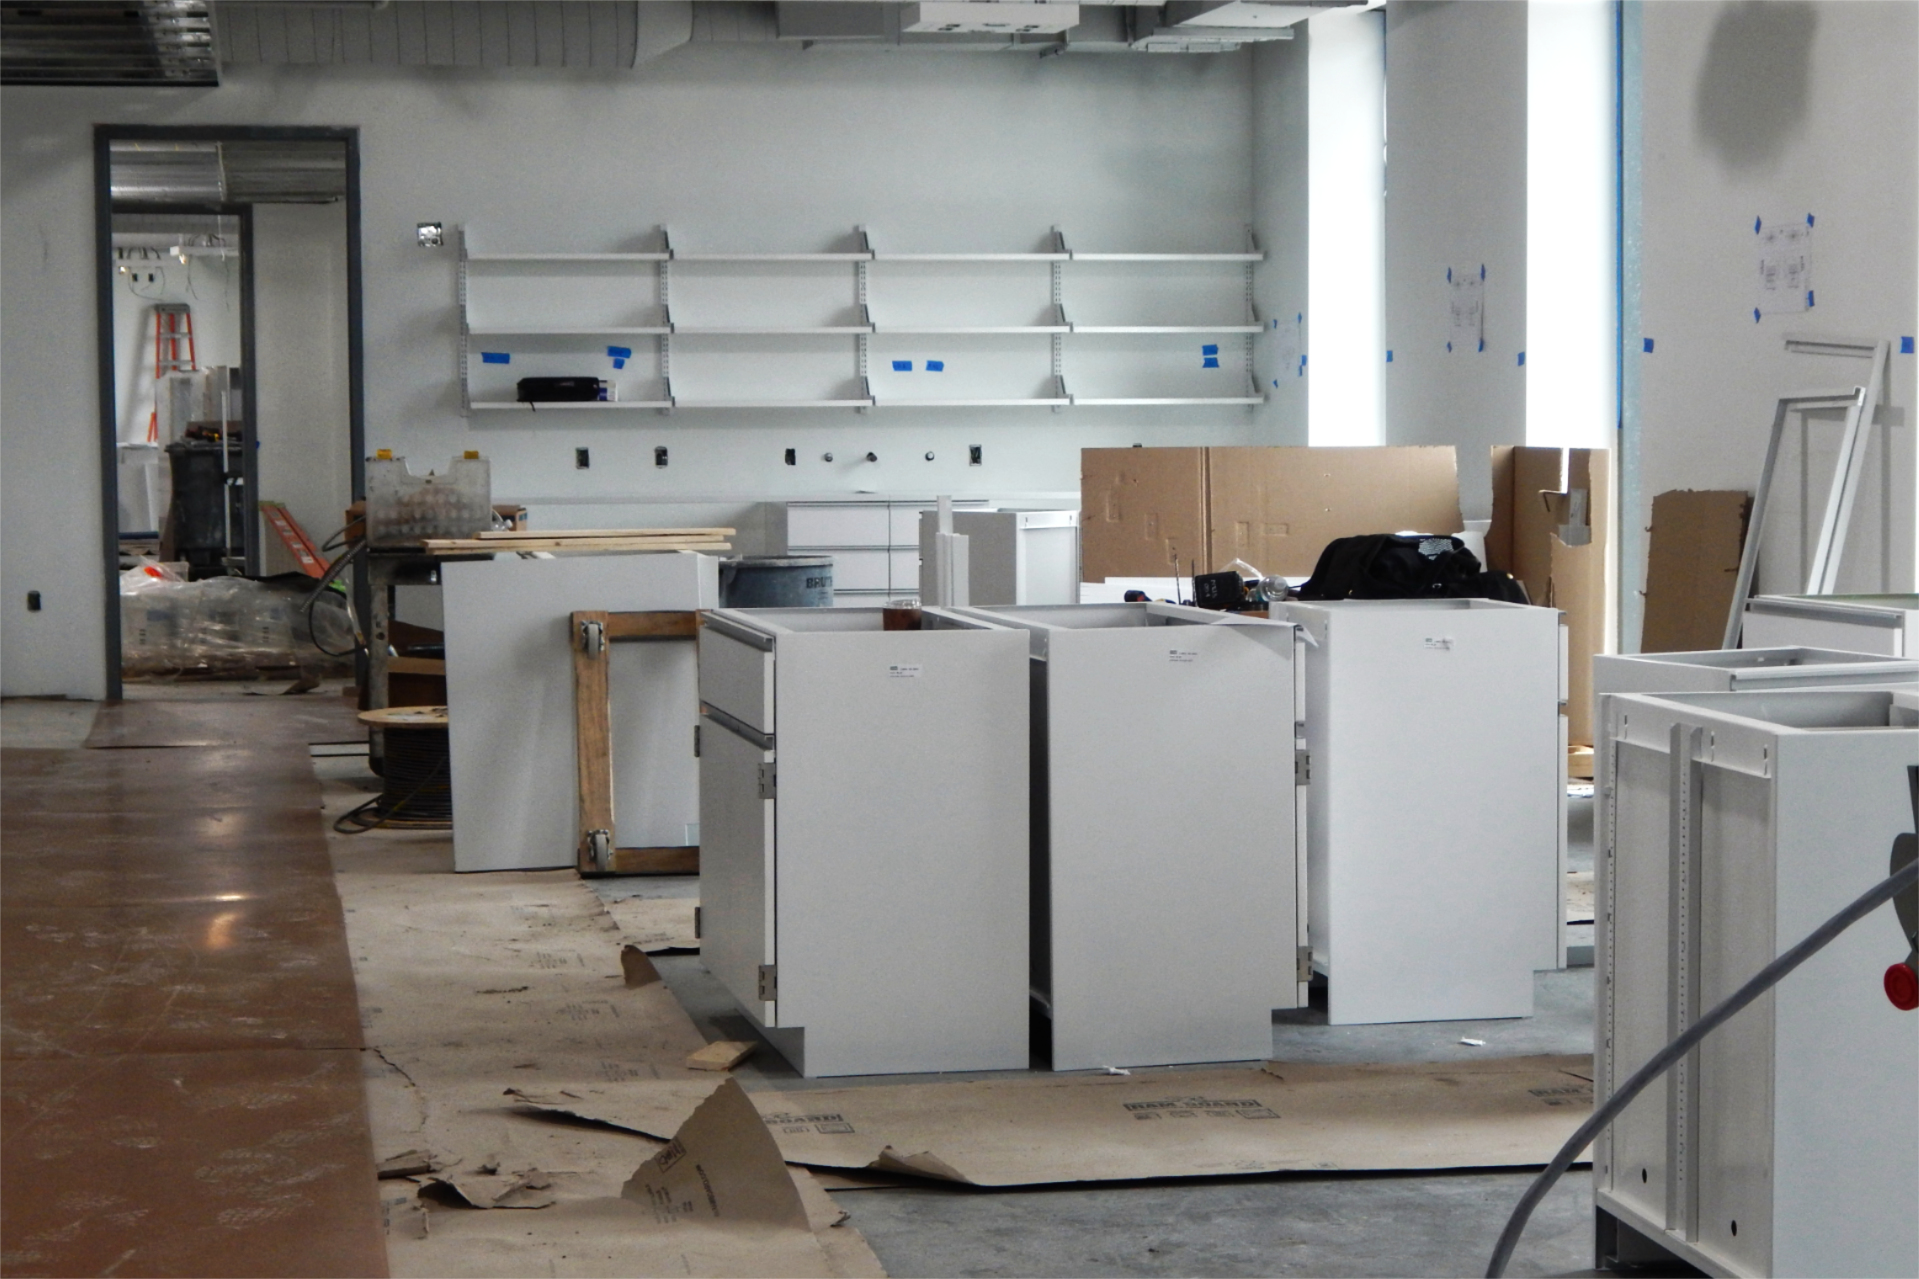 Cabinets await placement in a second-floor research lab that will be shared by faculty in biology and biochemistry. White is the permanent wall paint color here, but more coats will follow the initial top coat that's shown. (Doug Hubley/Bates College)